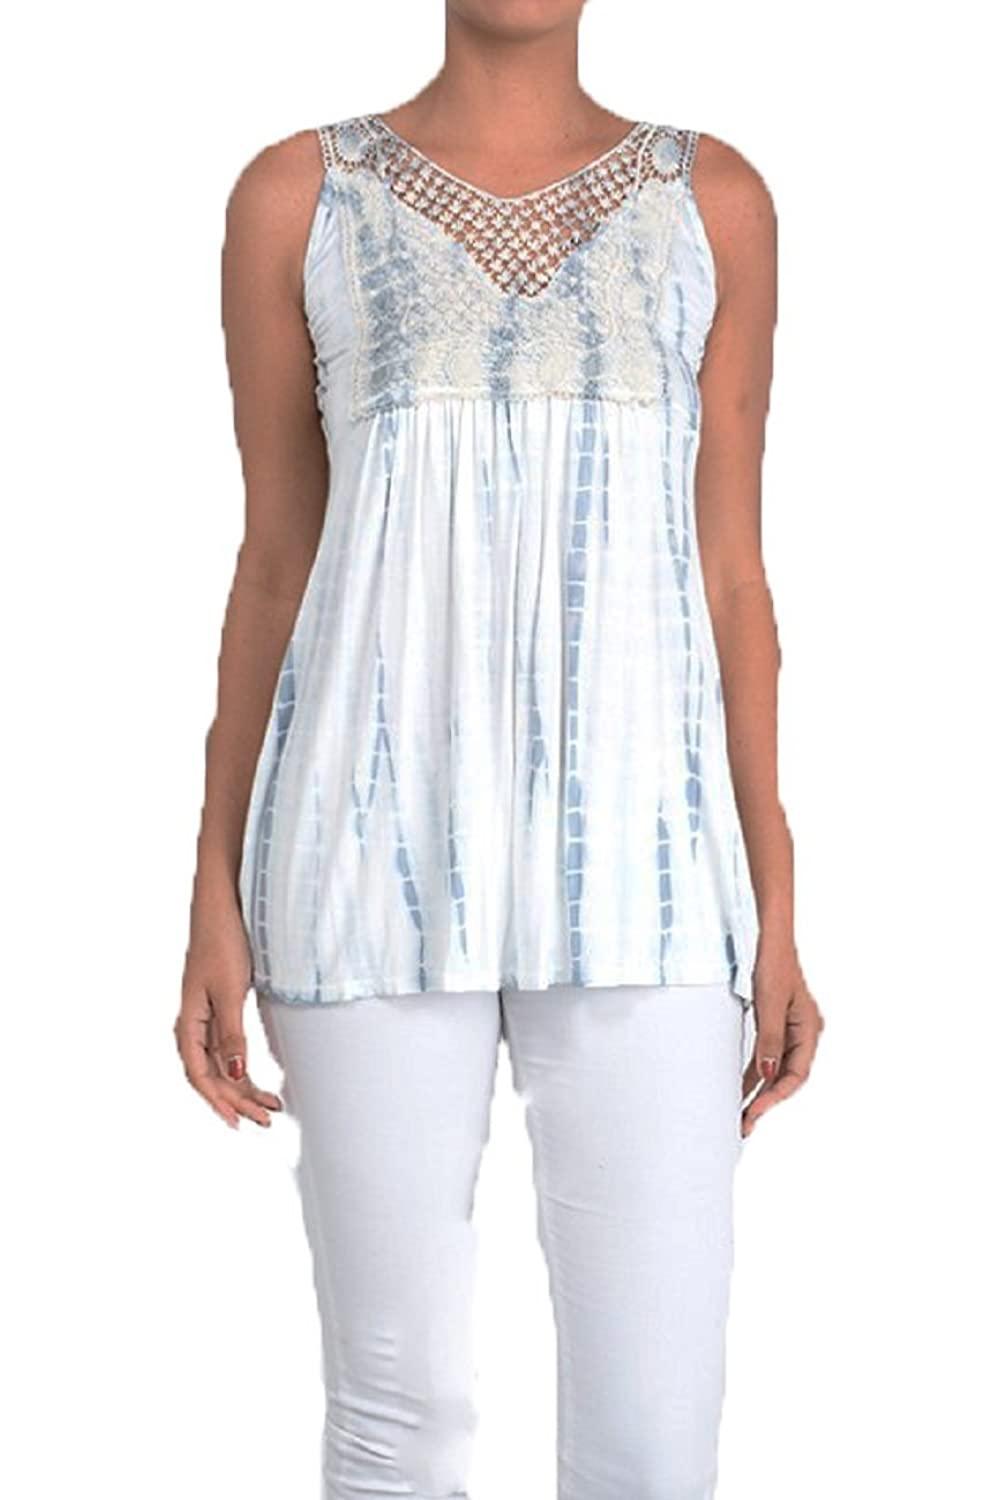 T-Party Light Blue & White Bamboo Dye Open Back Crochet Trim Tank Top